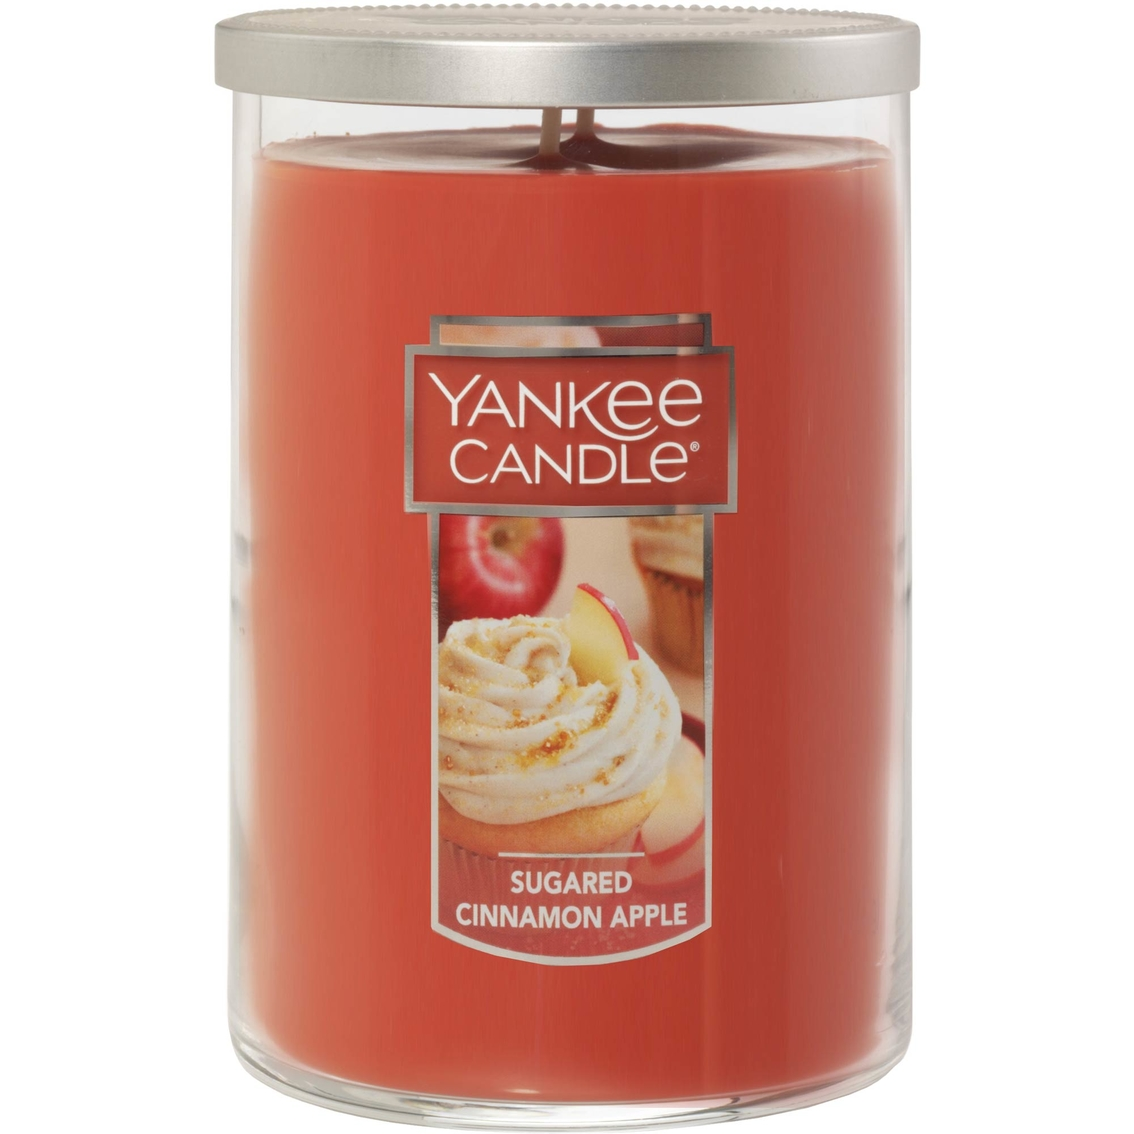 Yankee Candle Large 2-Wick Tumbler Scented Candle Sugared Cinnamon Apple